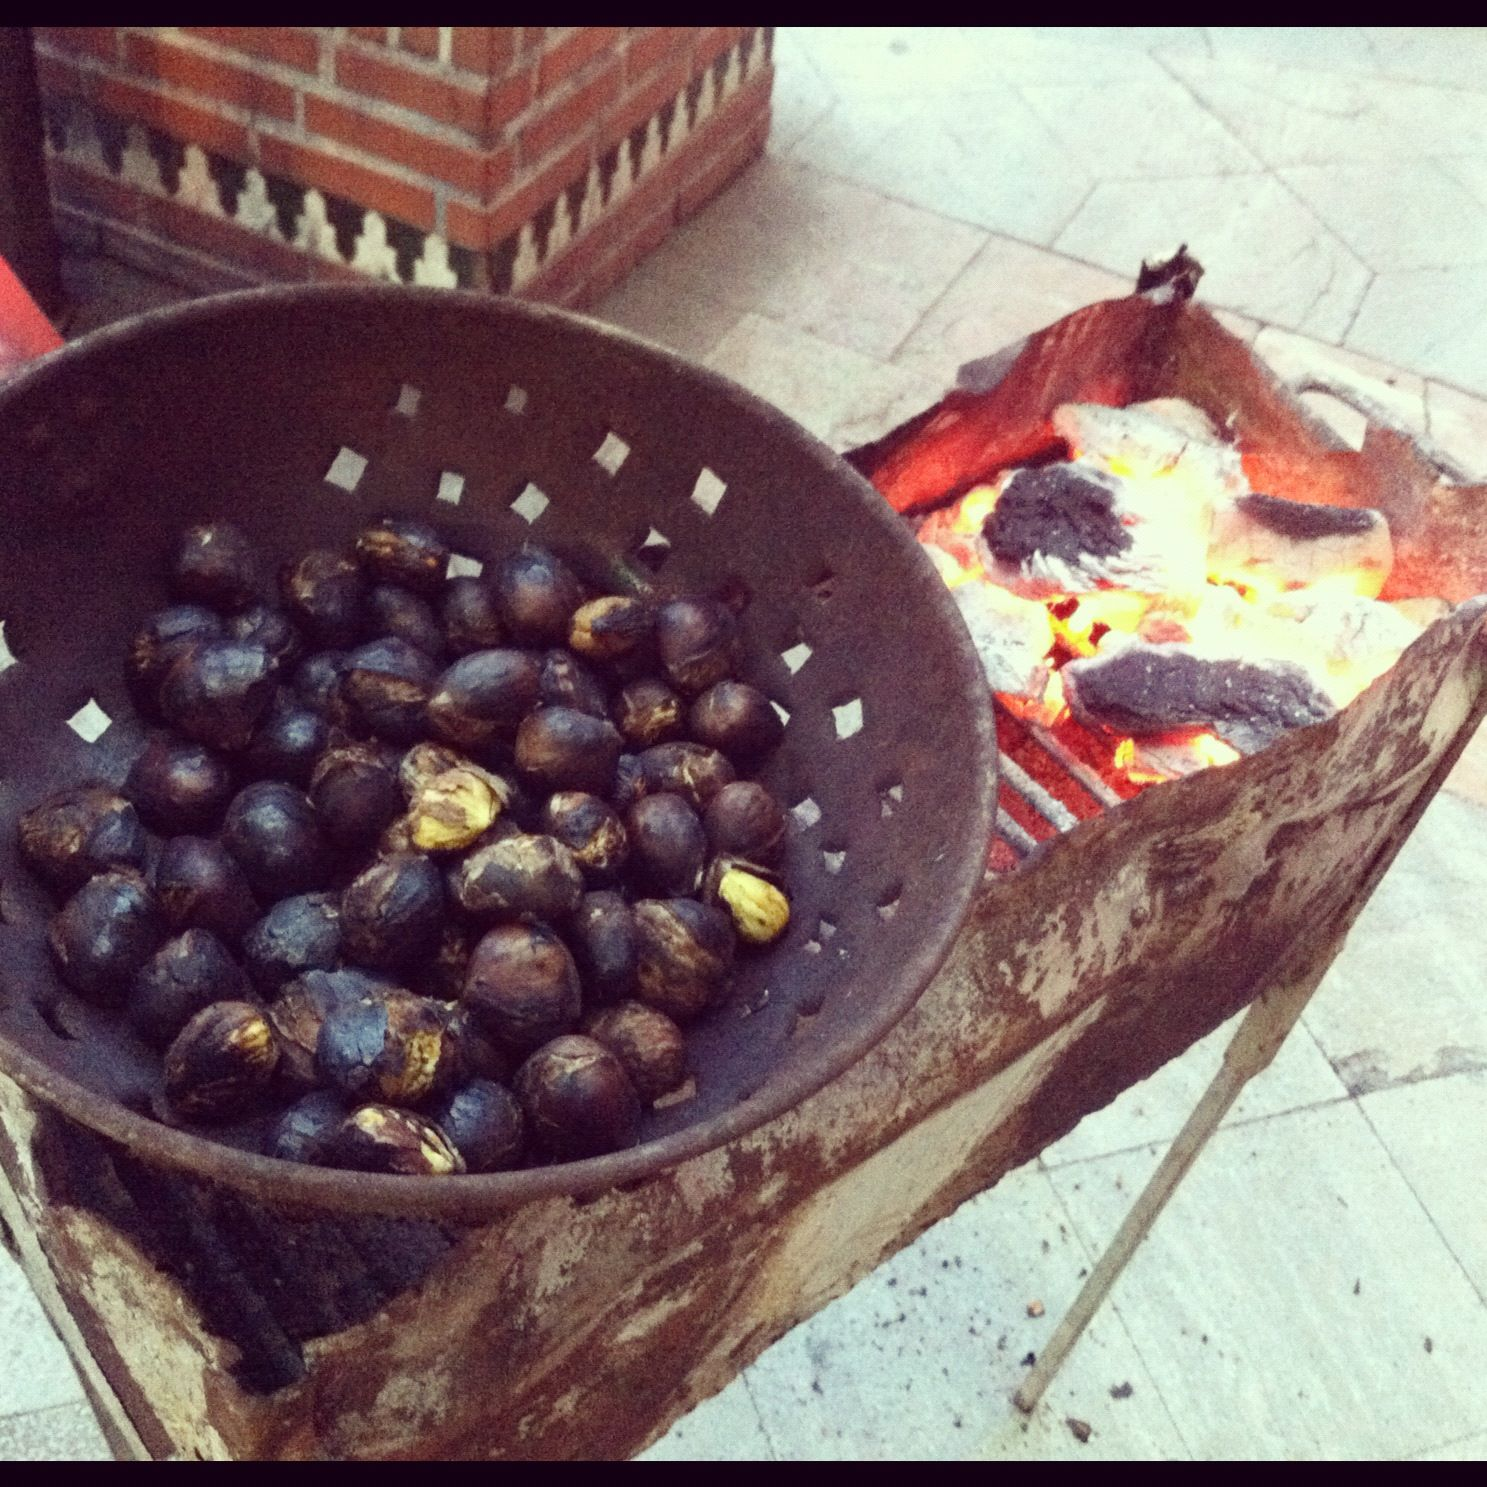 Roast chestnuts on every corner great smell wafting around roast chestnuts on every corner great smell wafting around granada streets at christmas portuguese recipesspanish food forumfinder Image collections